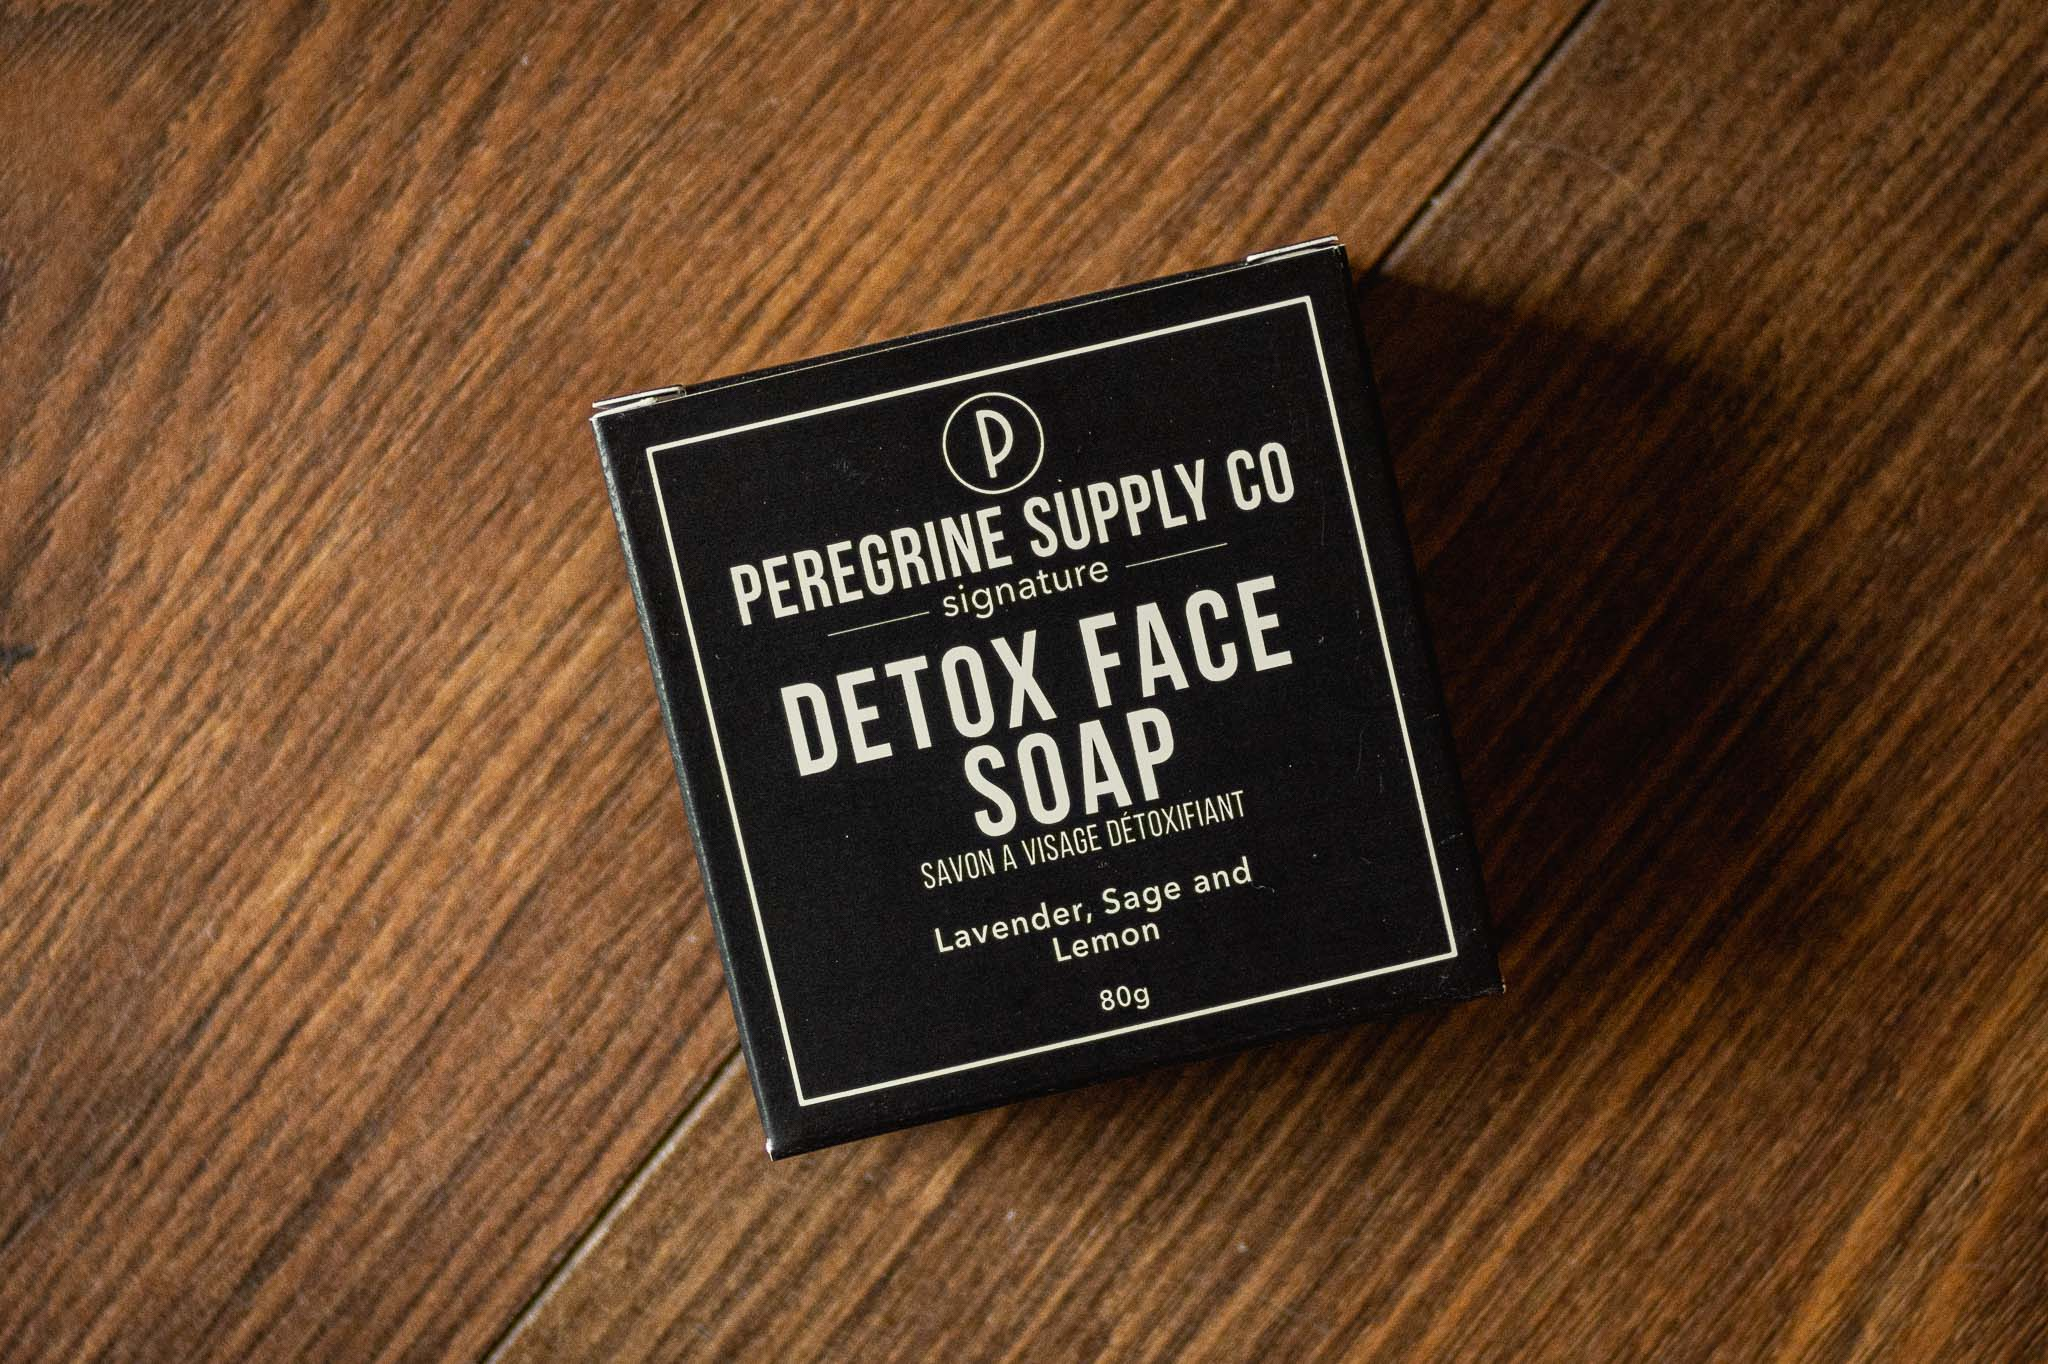 Detox Face Soap by Peregrine Supply Co